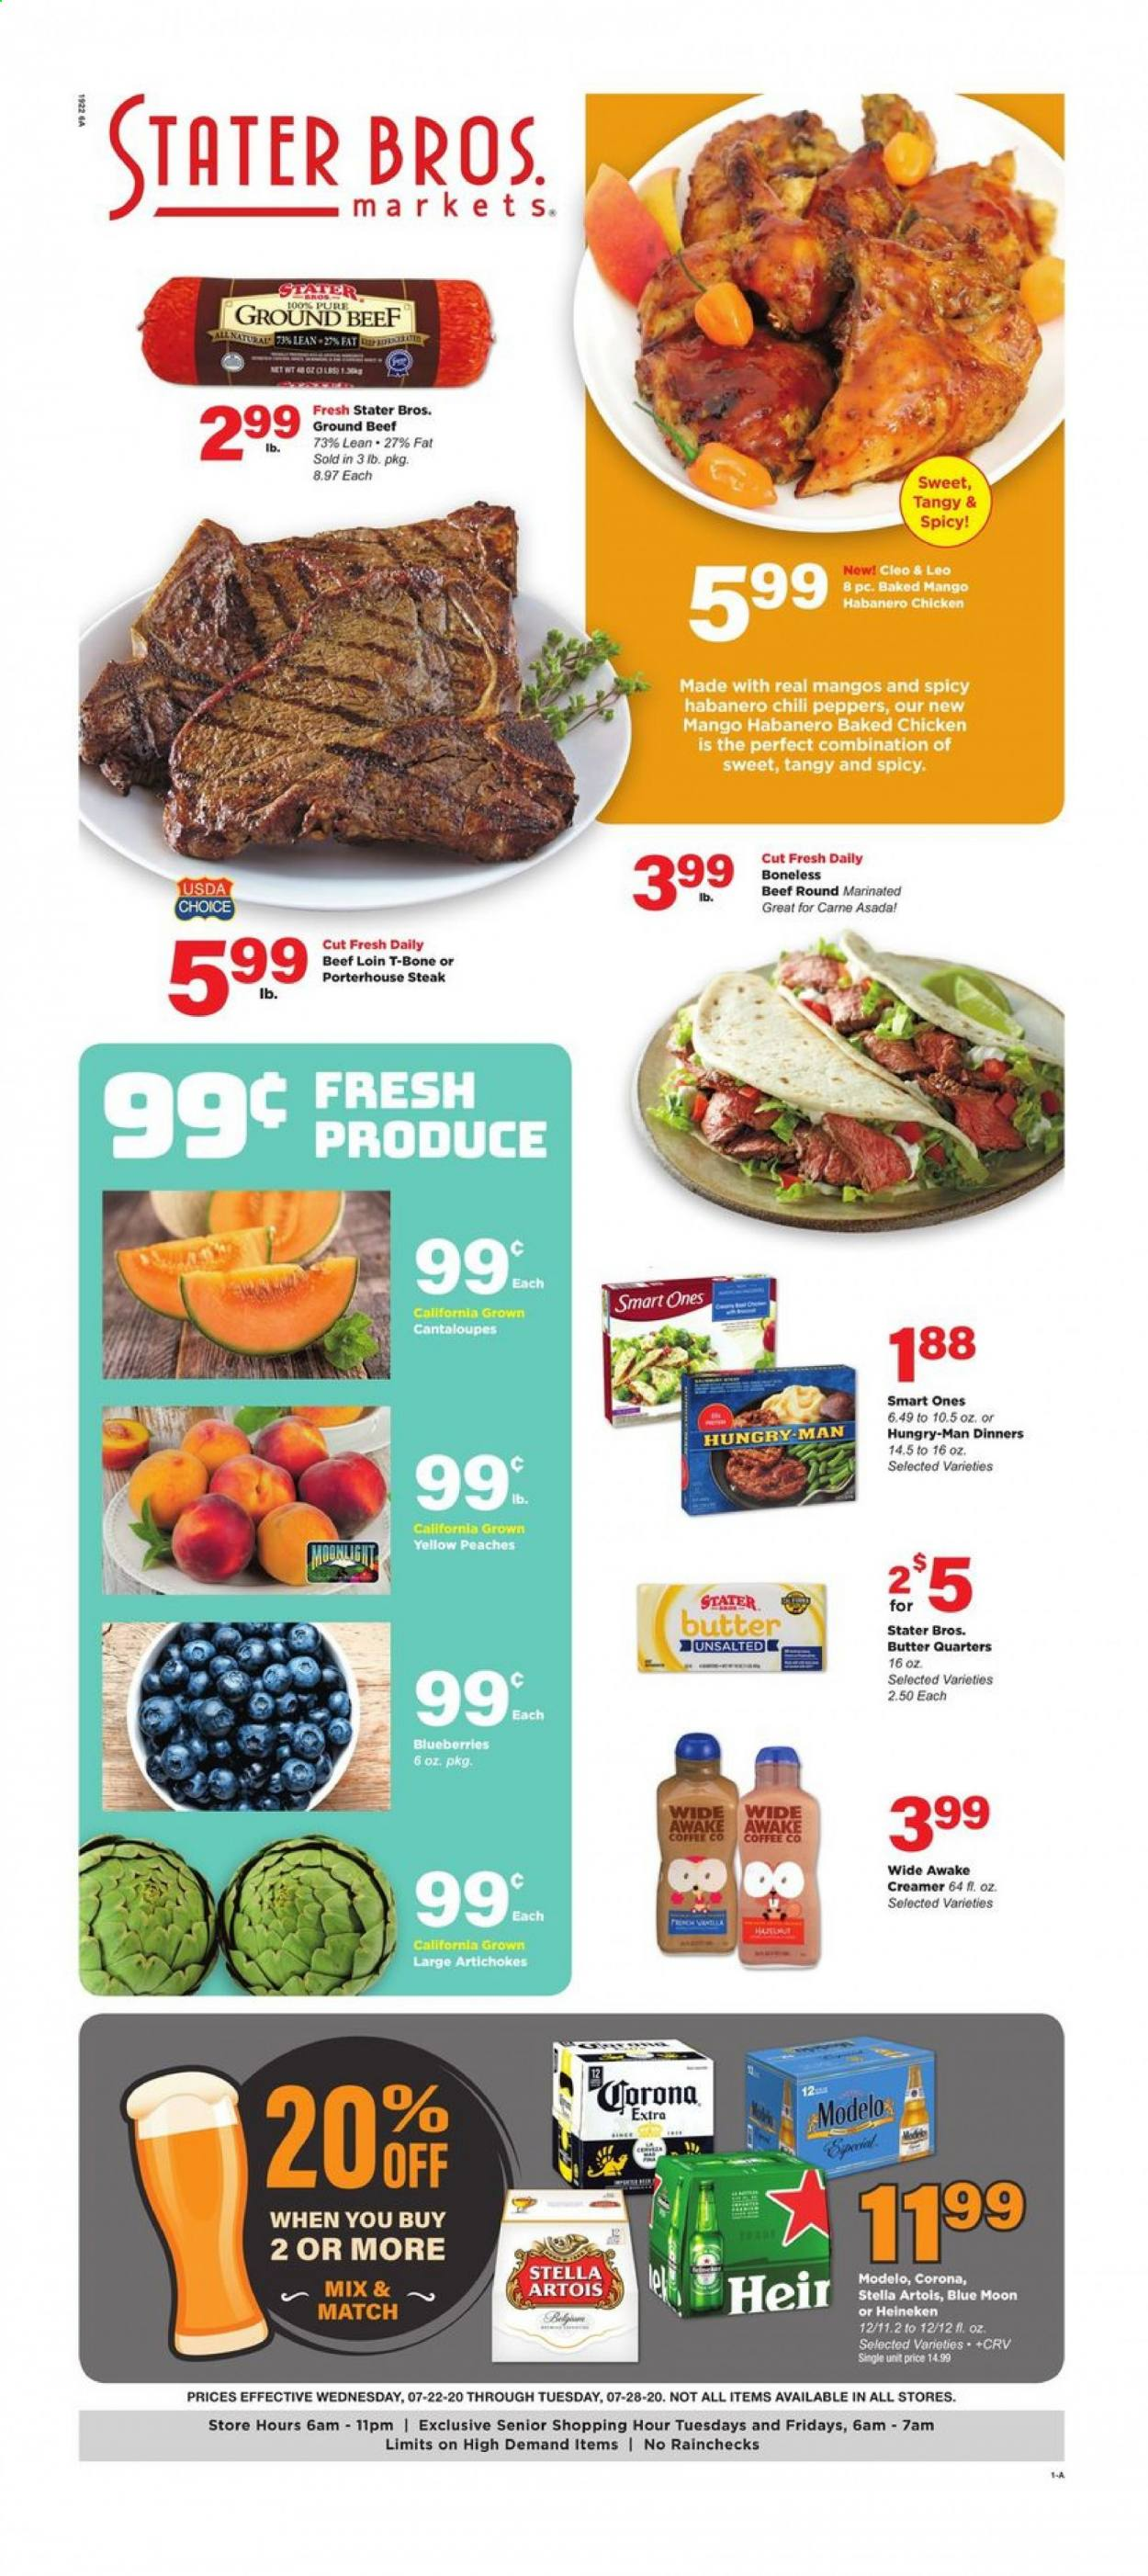 Stater Bros. Flyer - 07.22.2020 - 07.28.2020 - Sales products - artichokes, beef meat, blueberries, butter, cantaloupe, coffee, ground beef, mango, stella artois, chicken, peaches, chili peppers, steak, creamer, corona, blue moon, heineken, peppers, peache. Page 1.